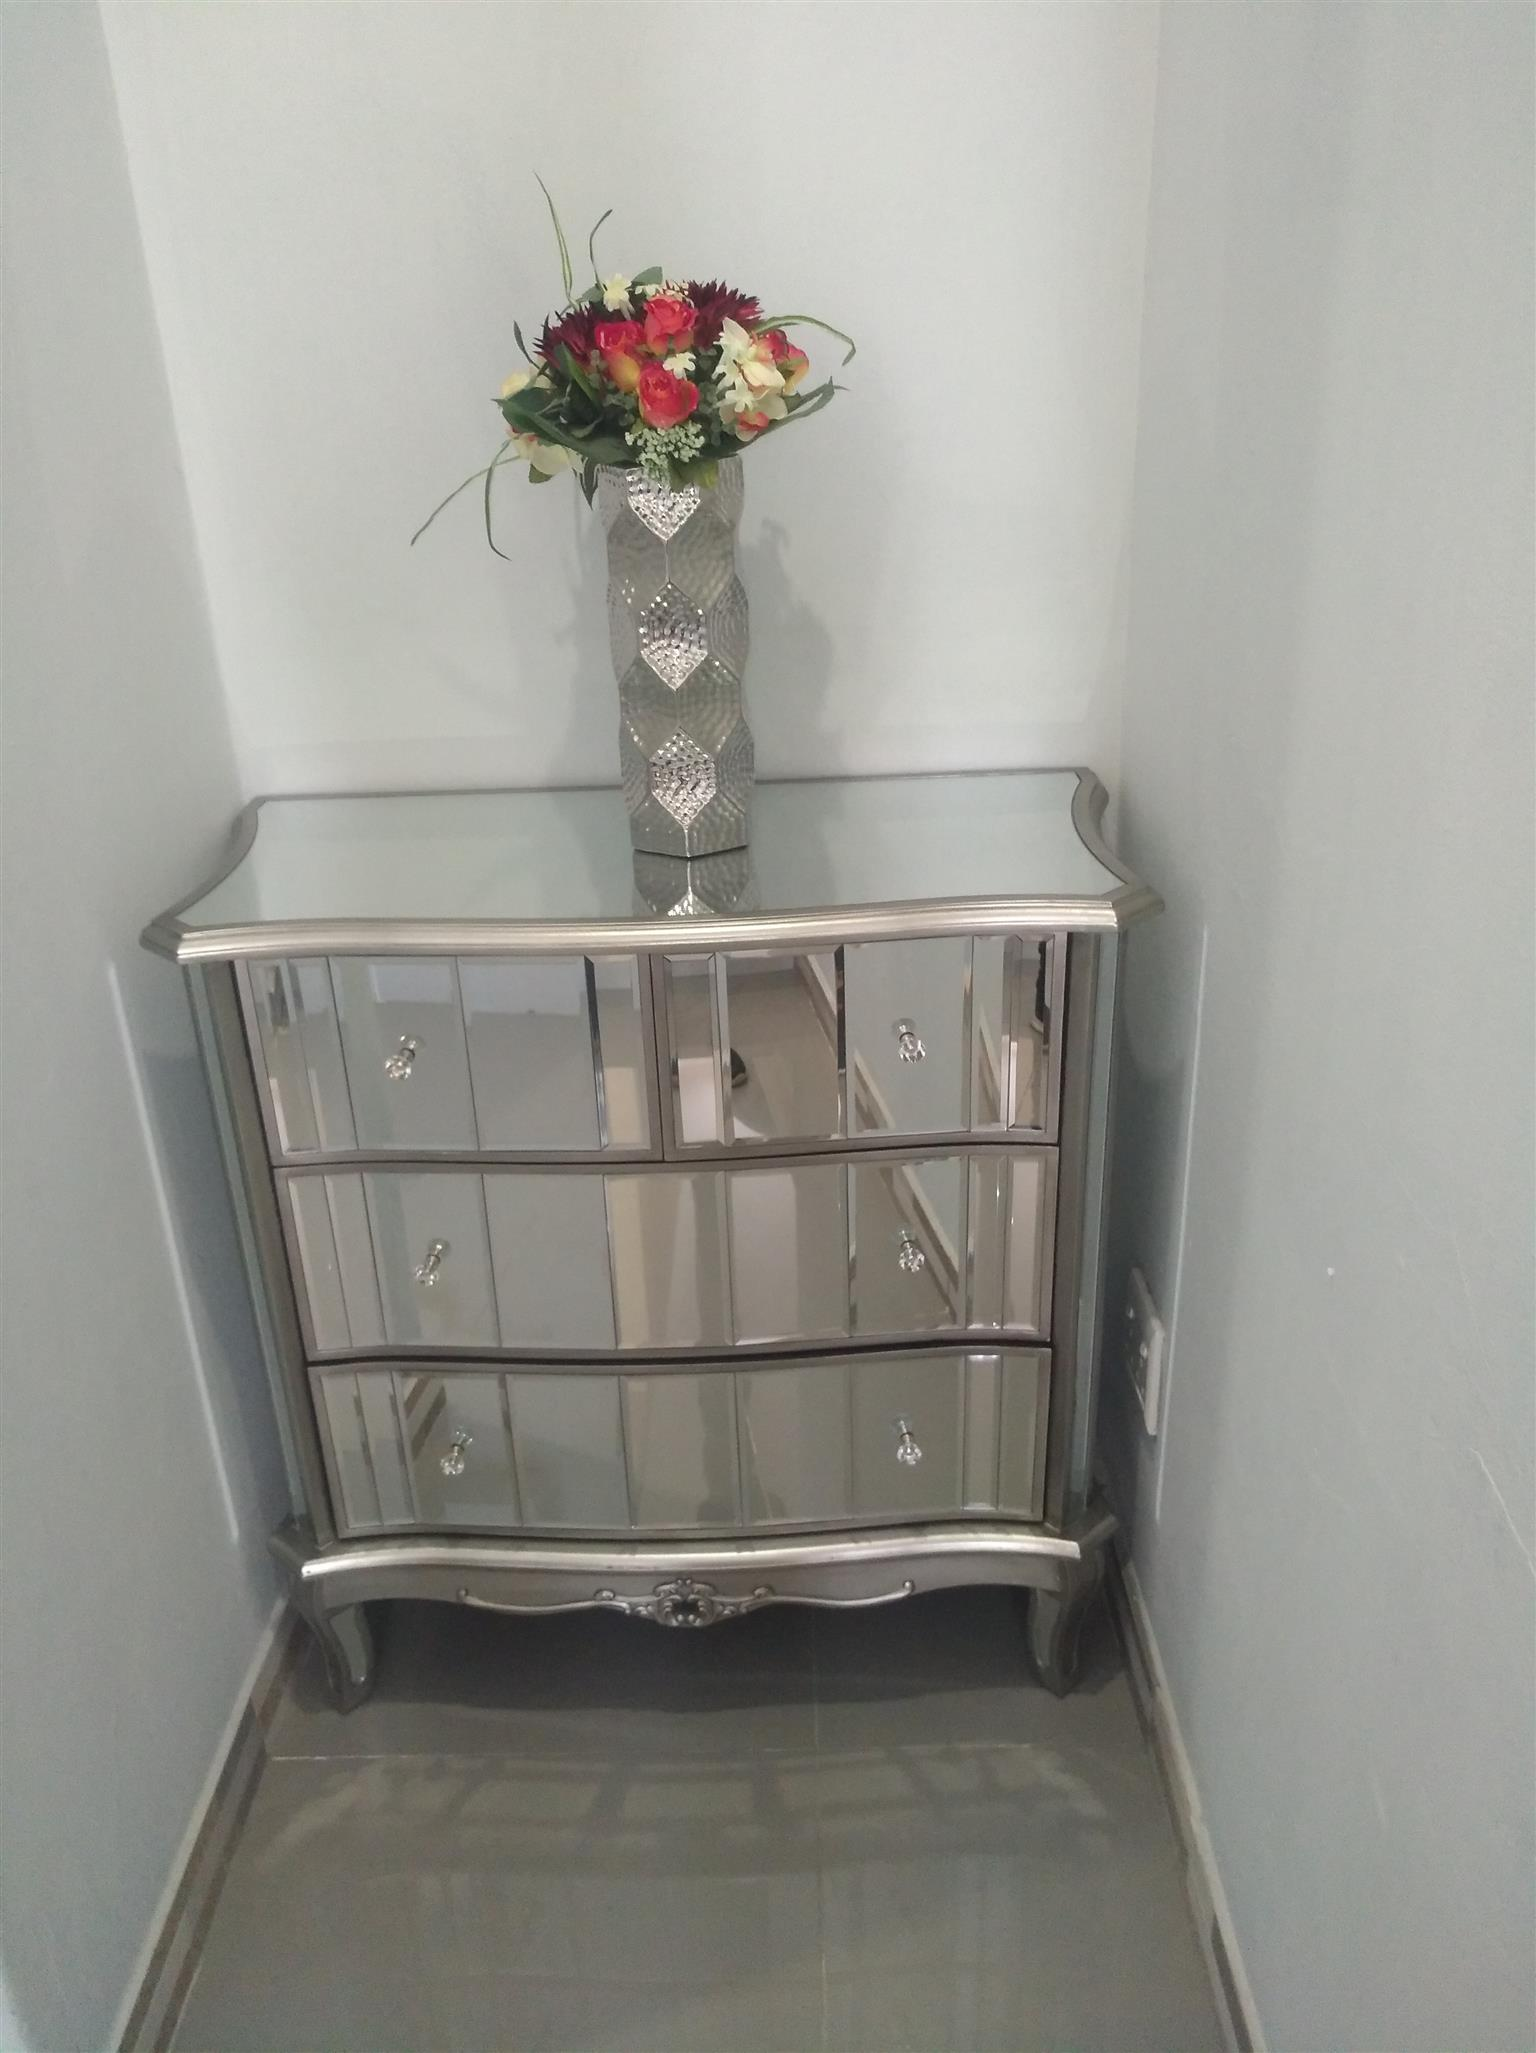 Vintage 4 draw mirror chest of drawers for sale brand new in boxes